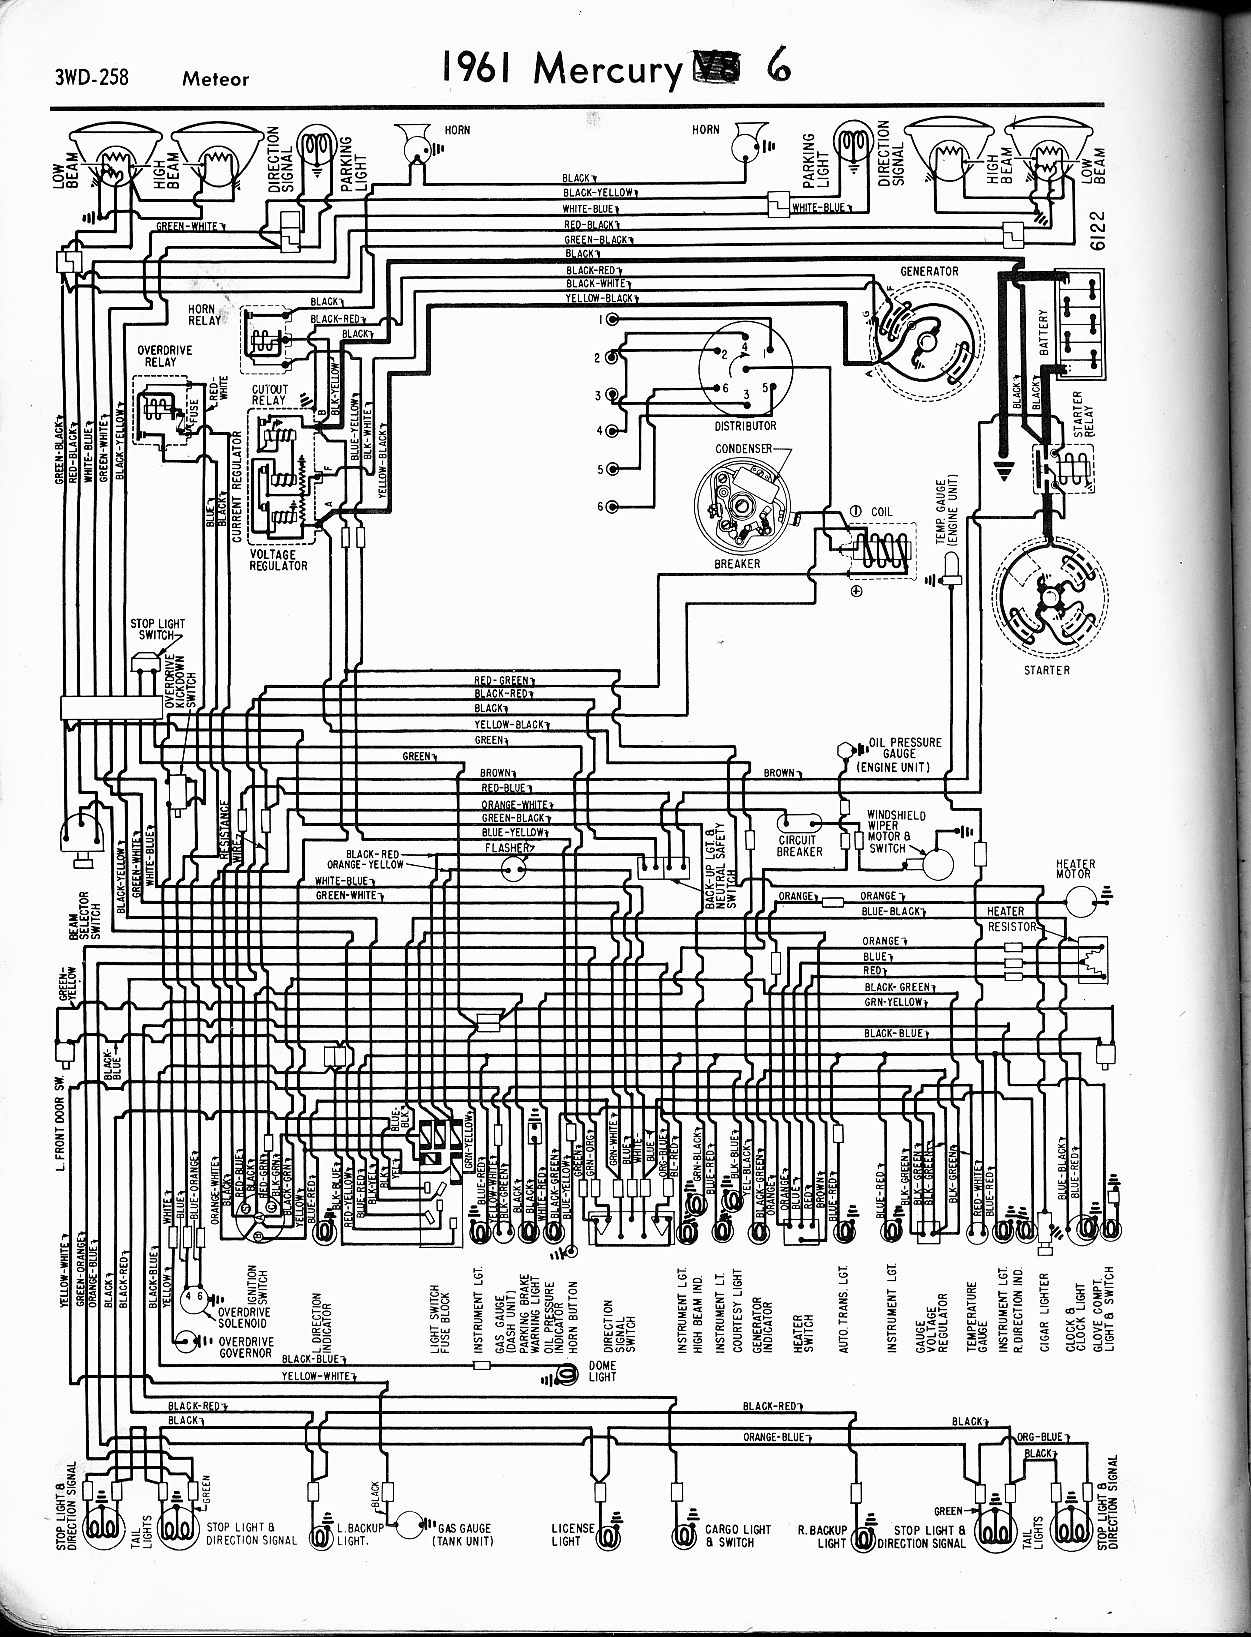 mercury wiring diagrams the old car manual project rh oldcarmanualproject com mercury stator wiring diagram mercury 402 wiring diagram